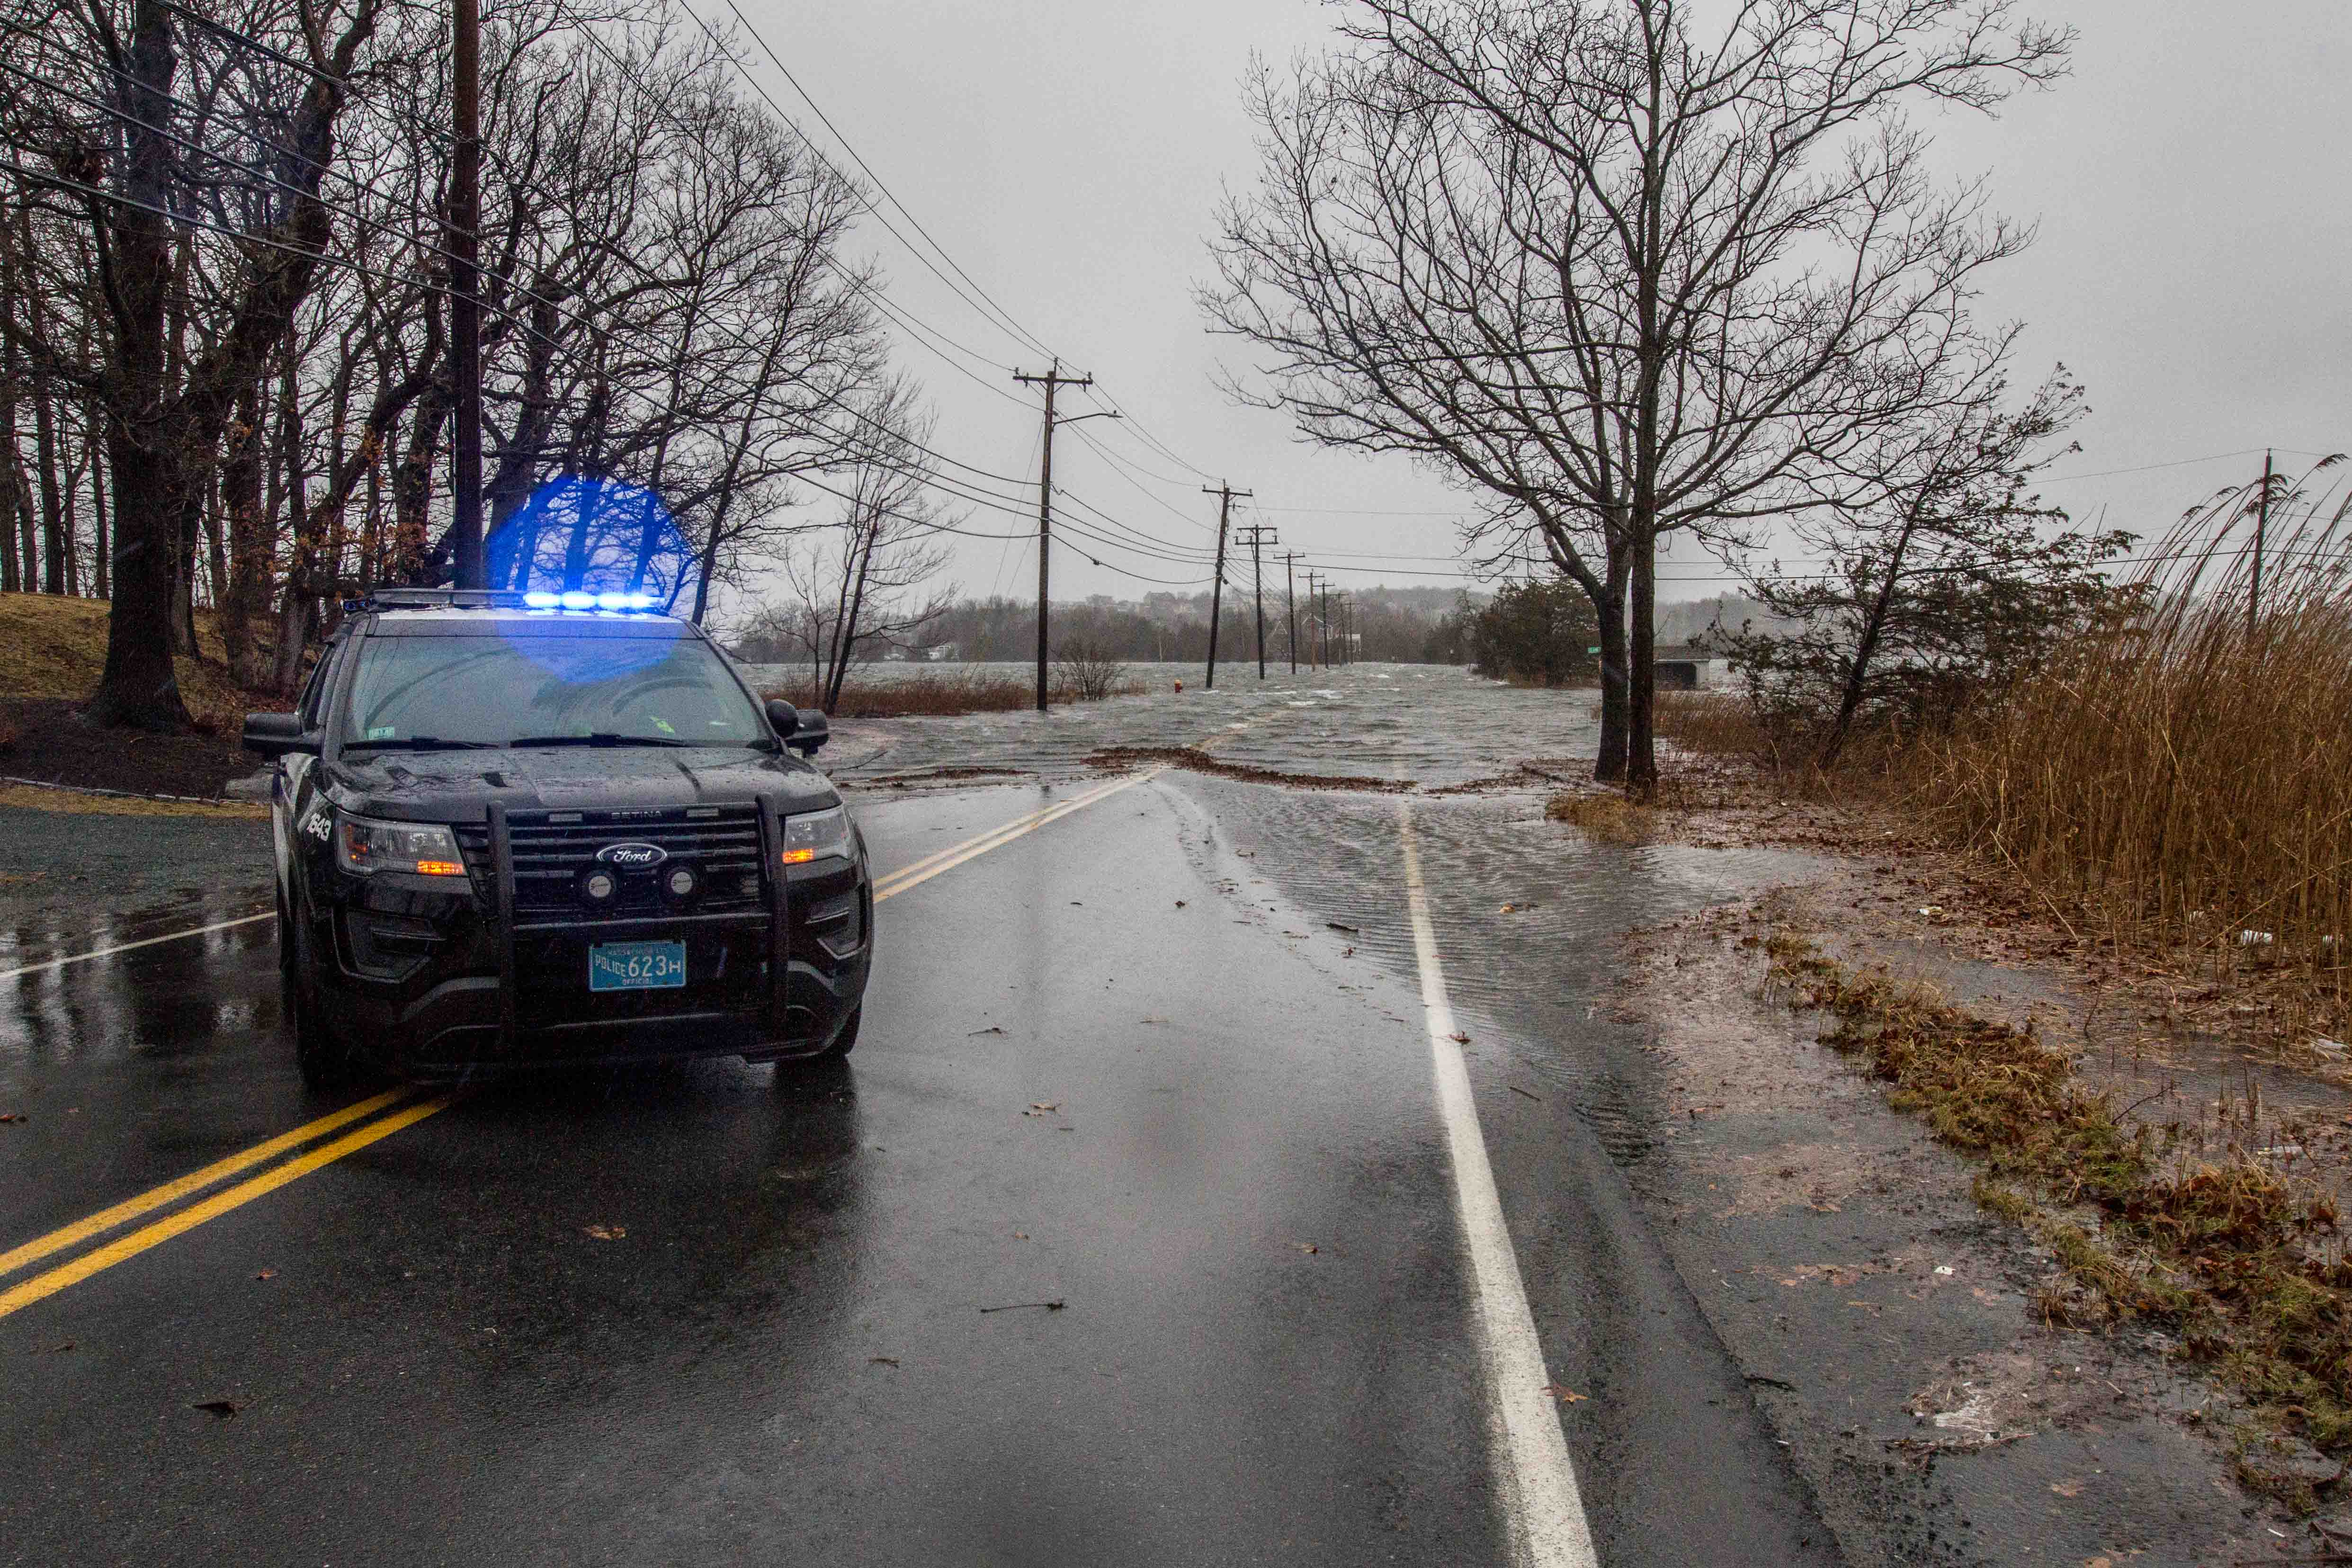 A powerful winter storm on March 2, 2018, pushes tide waters high enough to drown a road across the Great Marsh, temporarily cutting off hundreds of households at the far end from essential services in Ipswich. A healthy marsh can help protect coastal residents by softening the force of surging tides and heavy surf. (Photo by Coco McCabe/GroundTruth)